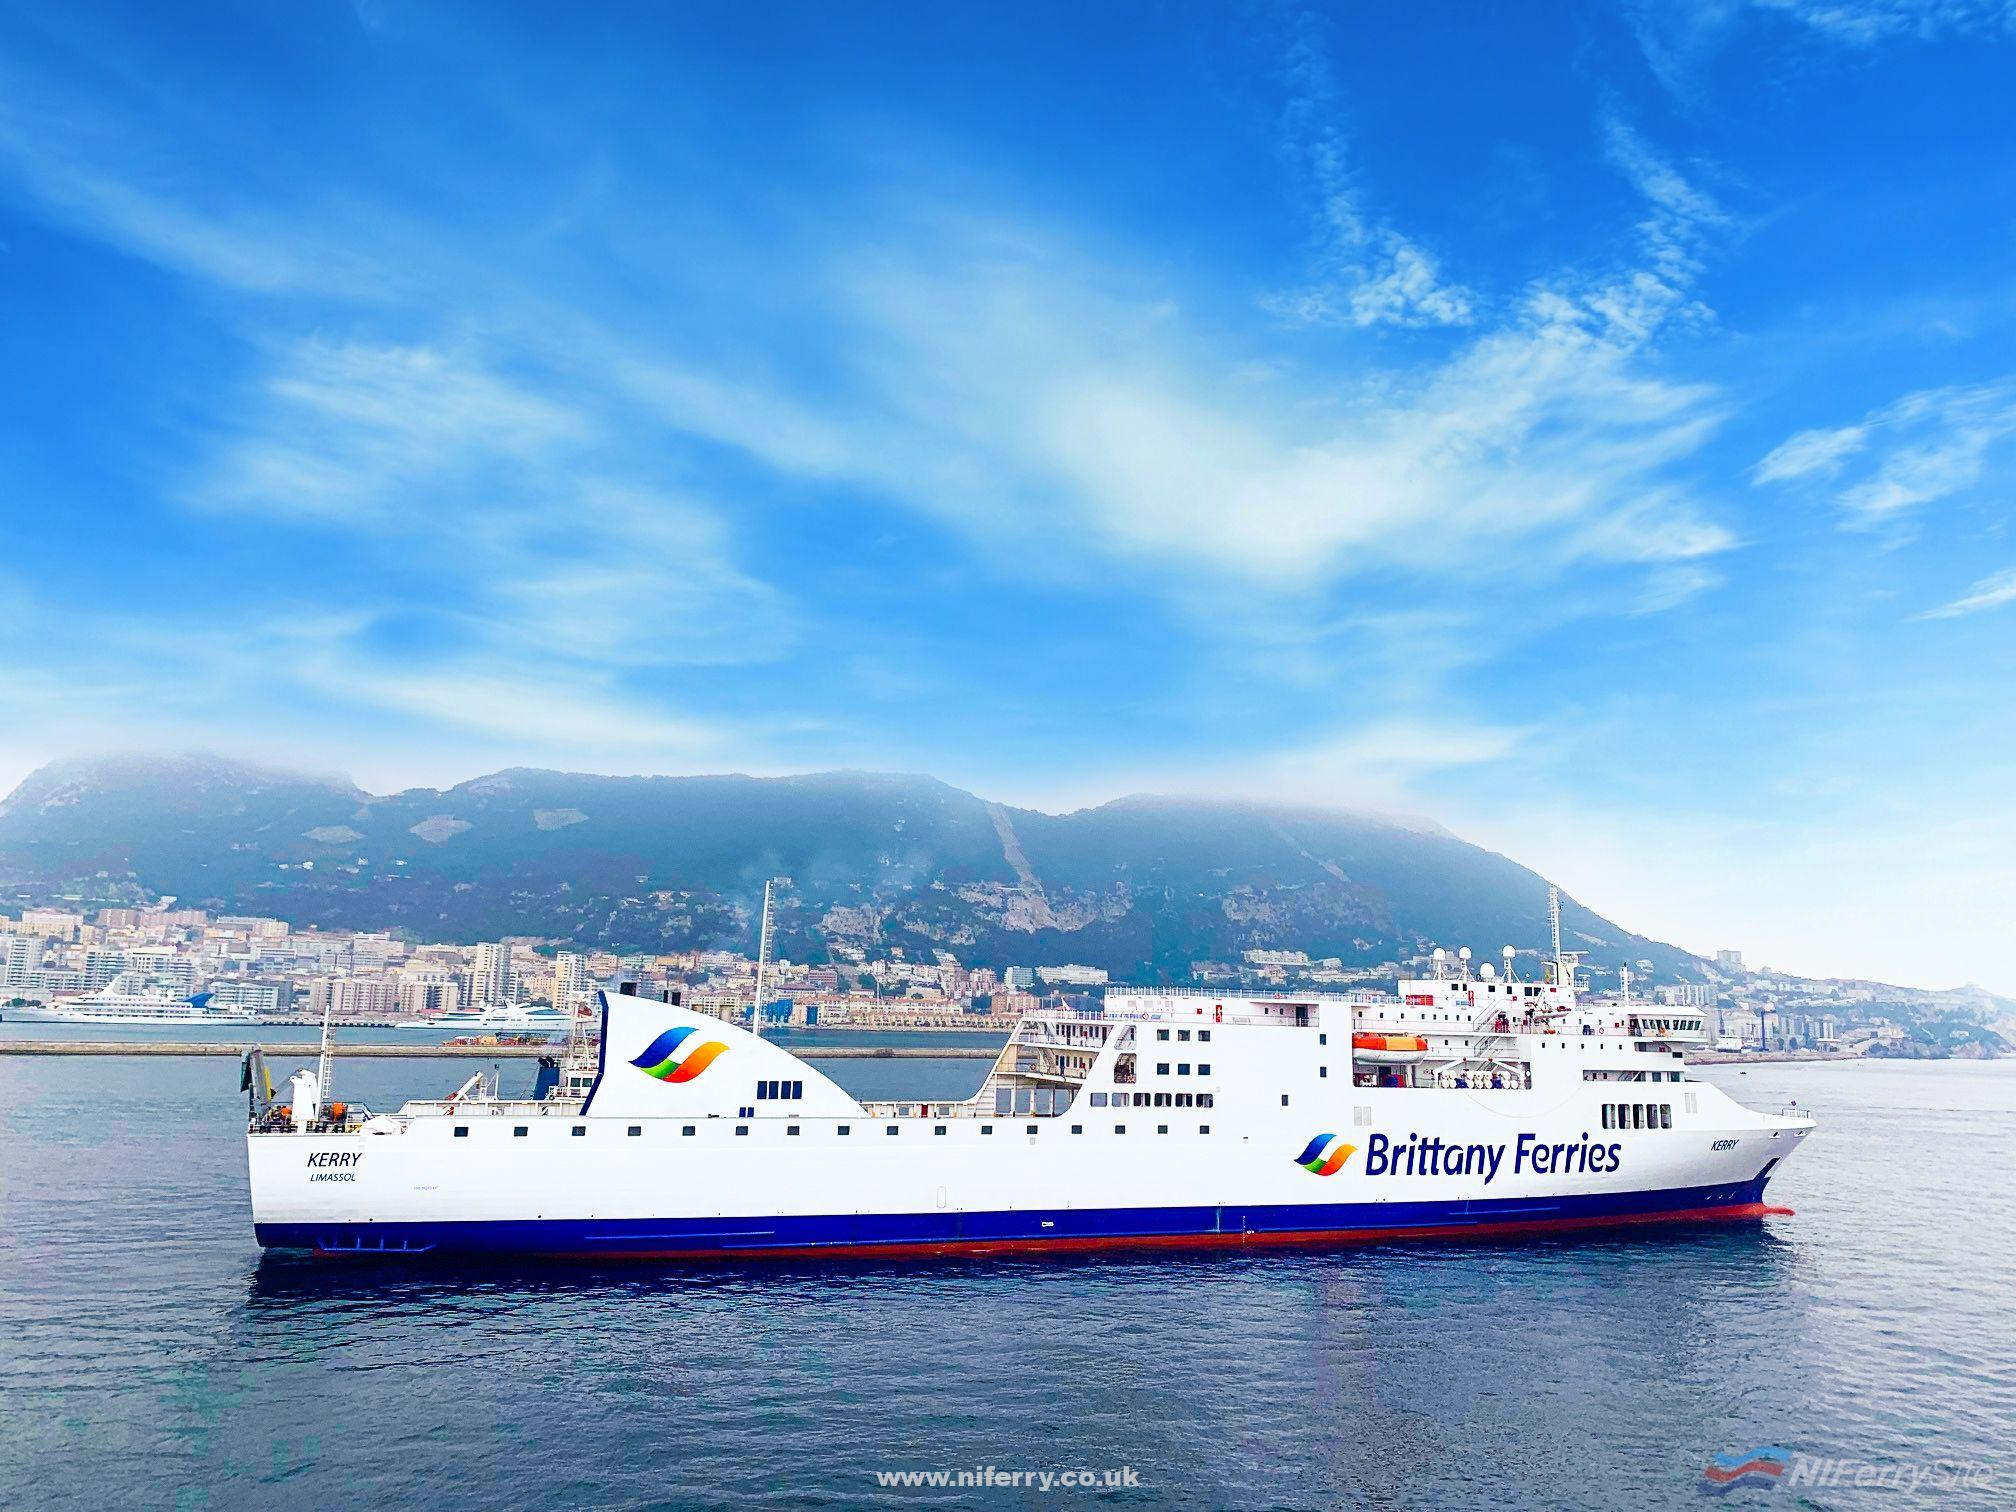 Brittany Ferries KERRY. Brittany Ferries